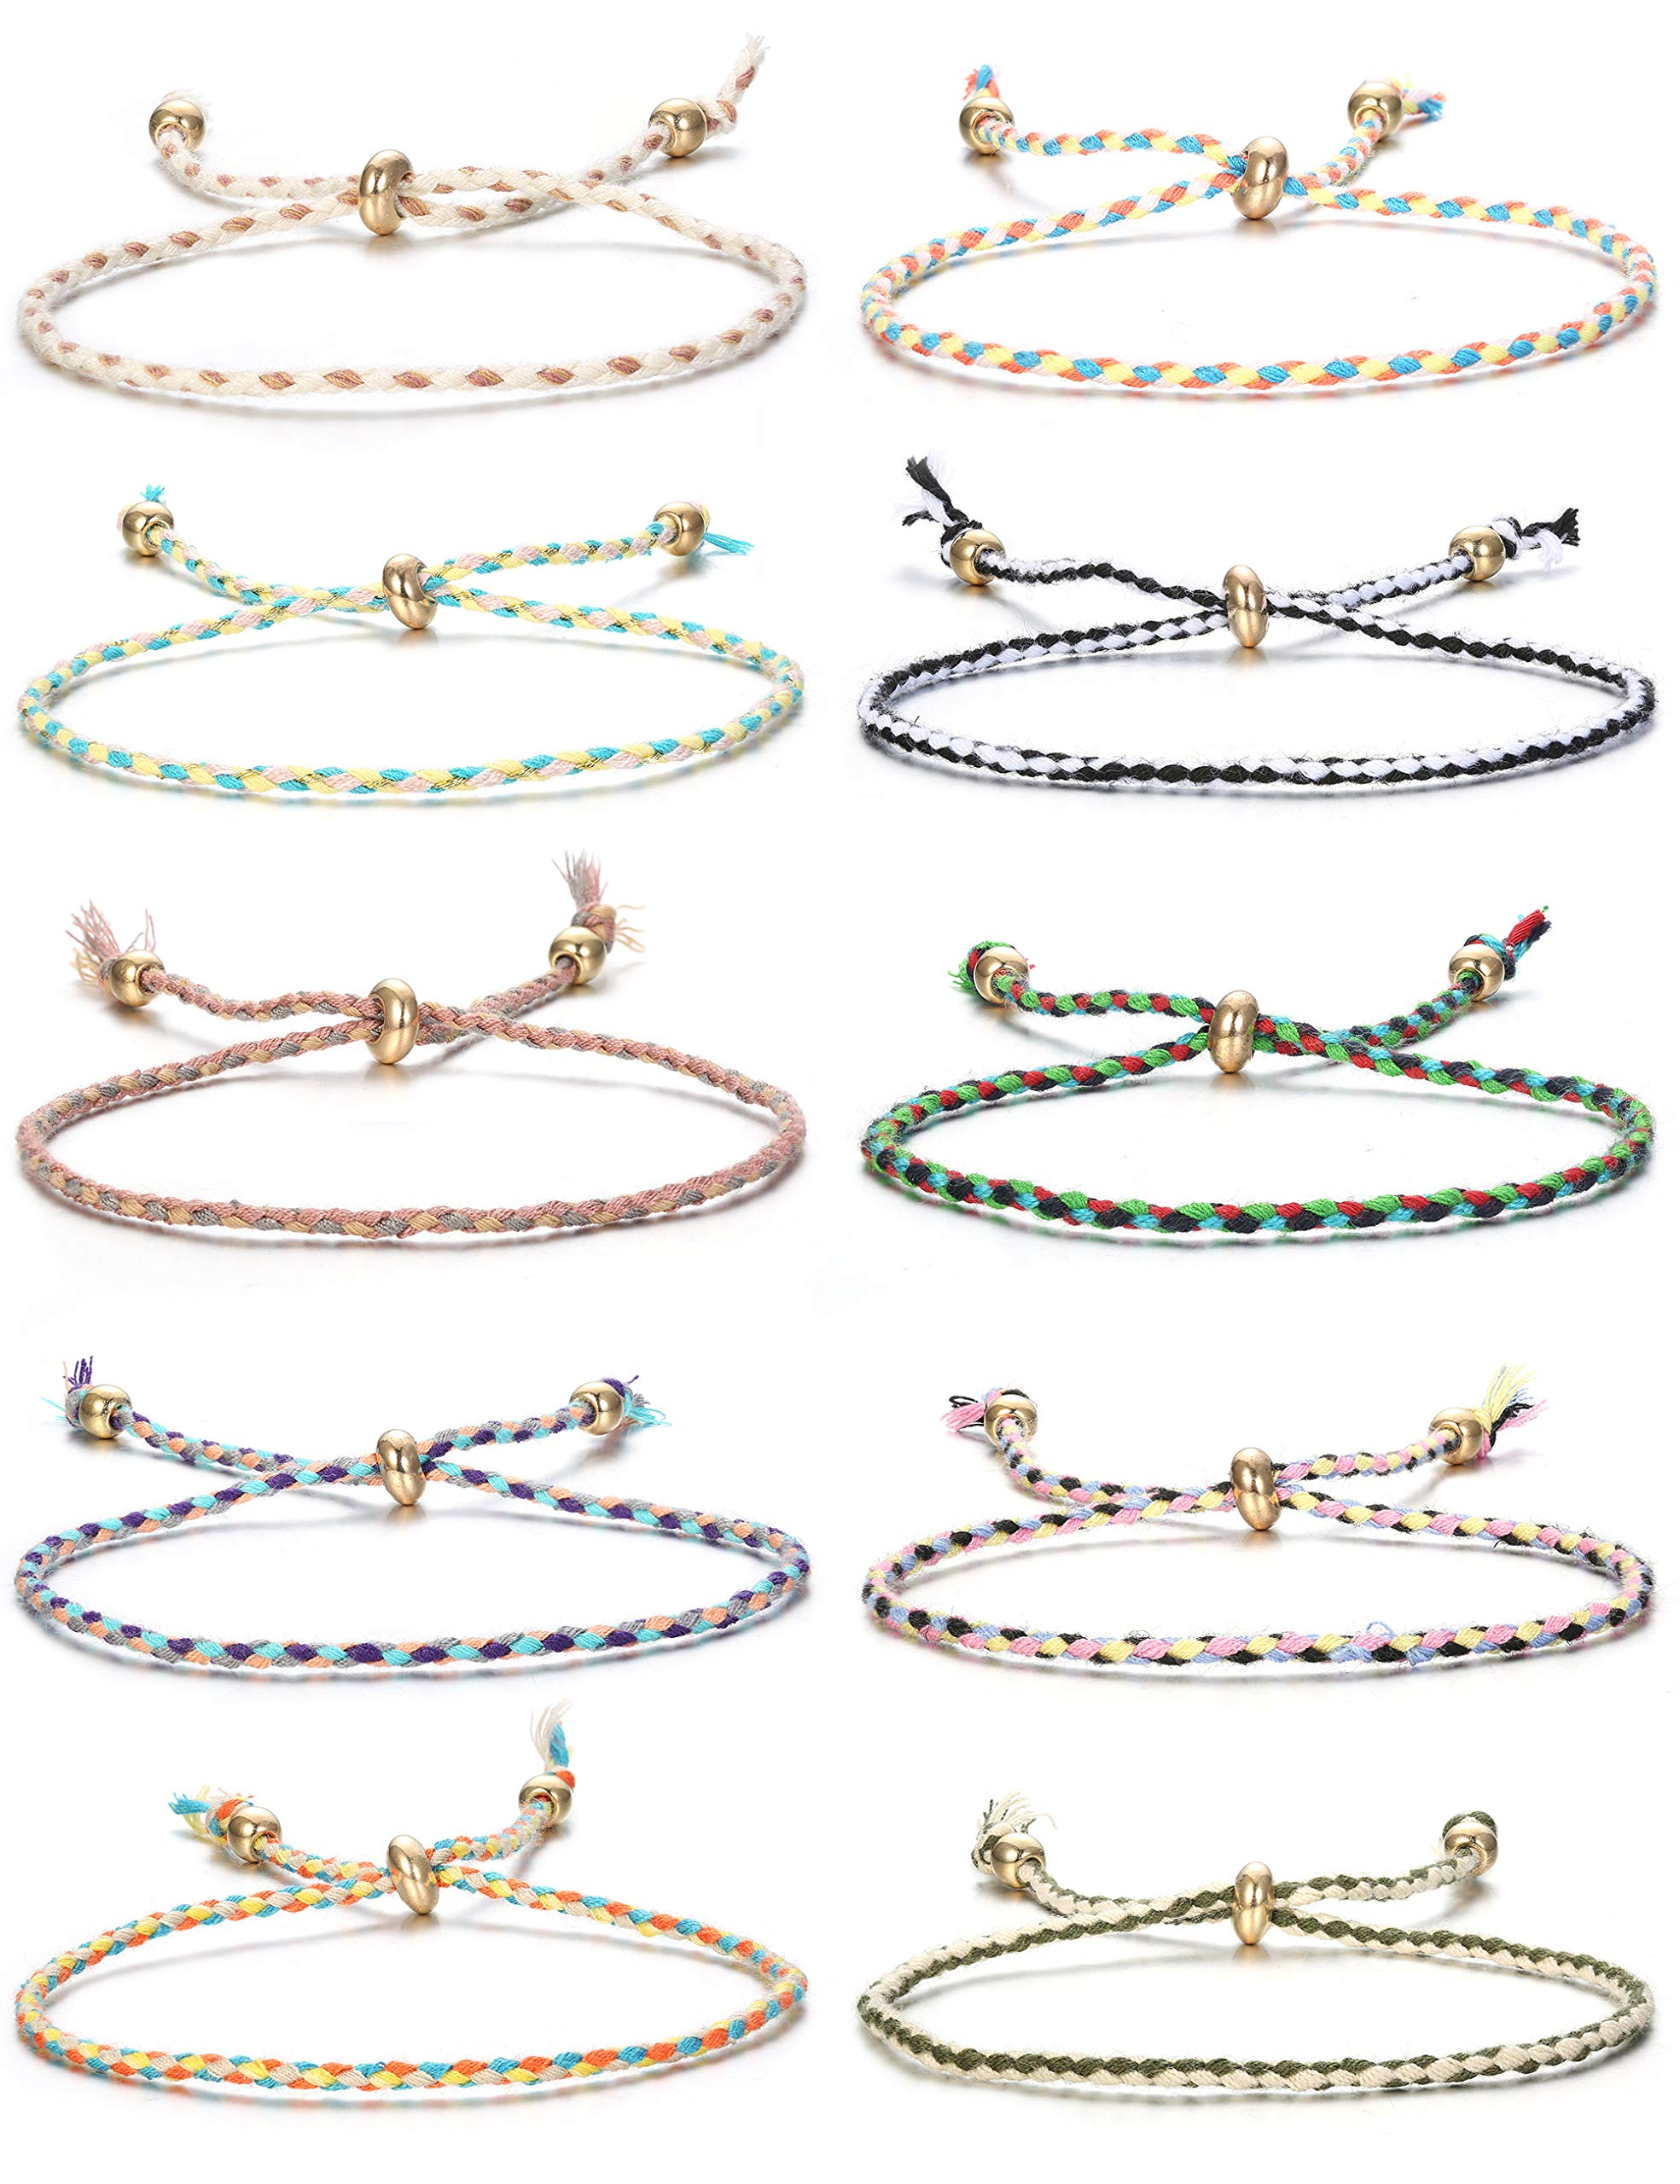 Jstyle 10Pcs Friendship Braided Bracelet for Women Girls Colorful Handmade String Wrap Bracelets for Wrist Anklet Cord Adjustable Birthday Gifts by Jstyle